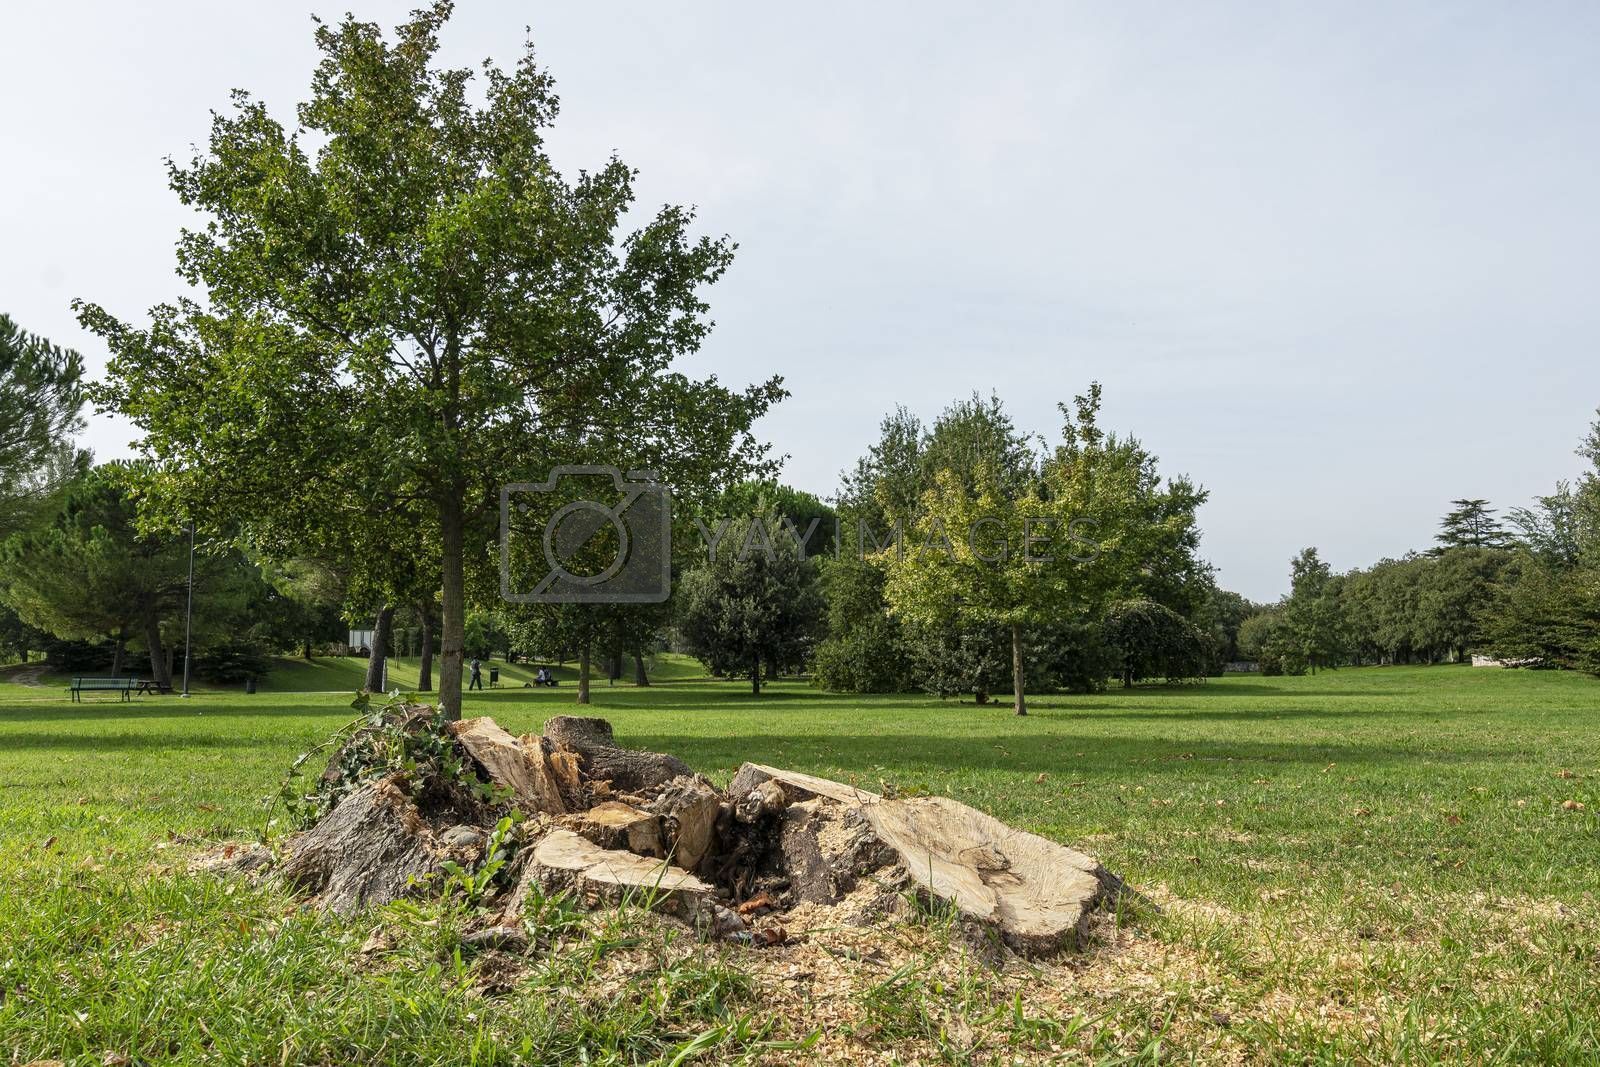 the trunk of a cut tree in the Moretti park in Udine